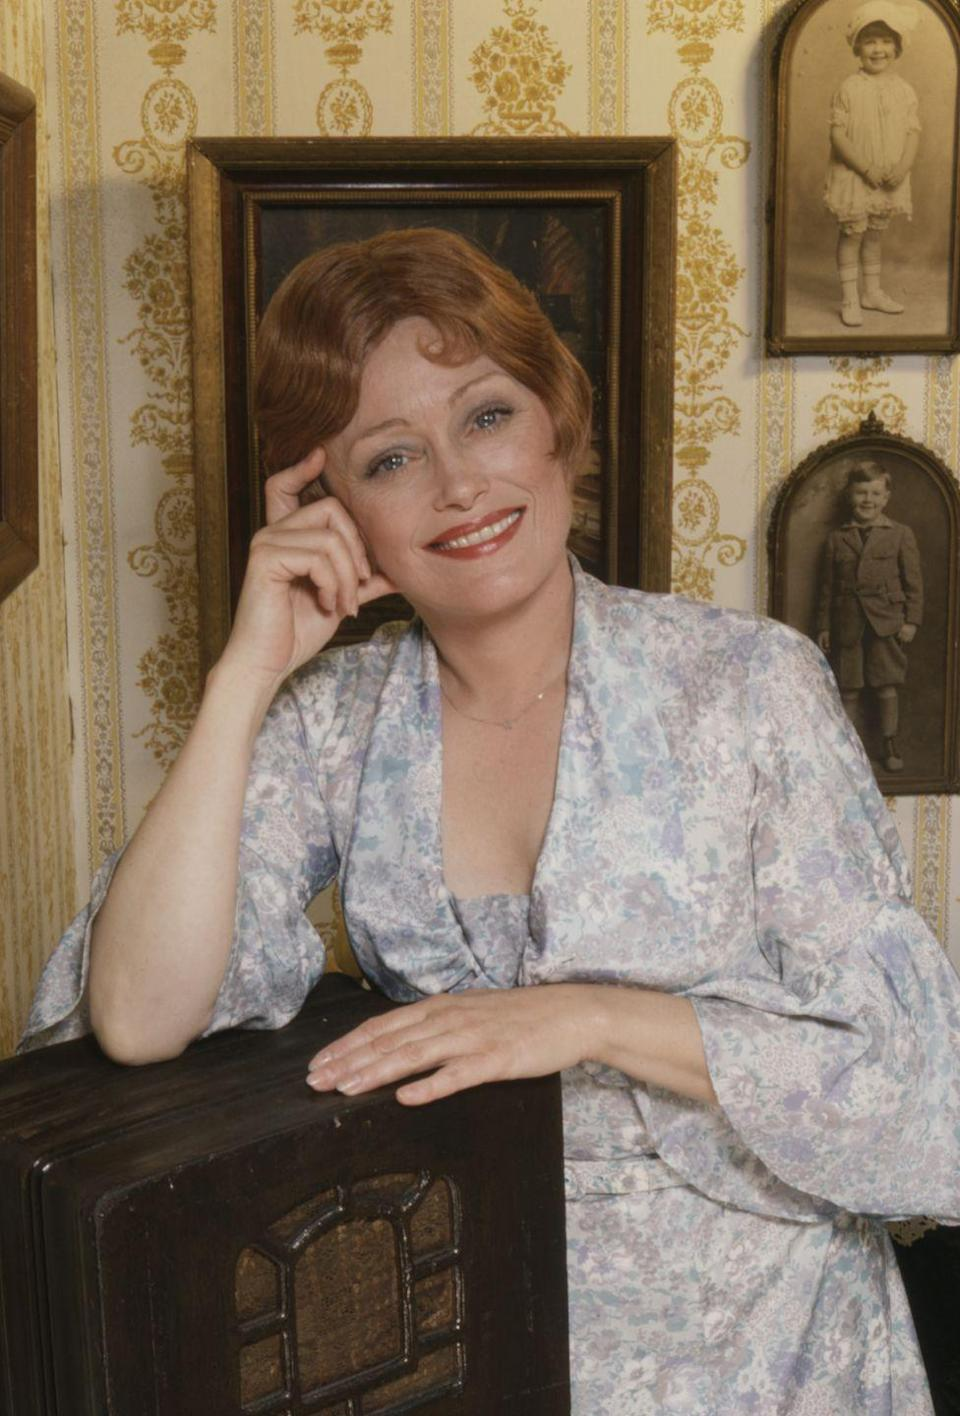 <p>Almost unrecognizable in this wig, McClanahan starred on the short lived series <em>Apple Pie</em> on ABC which only aired two episodes before getting canceled. </p>